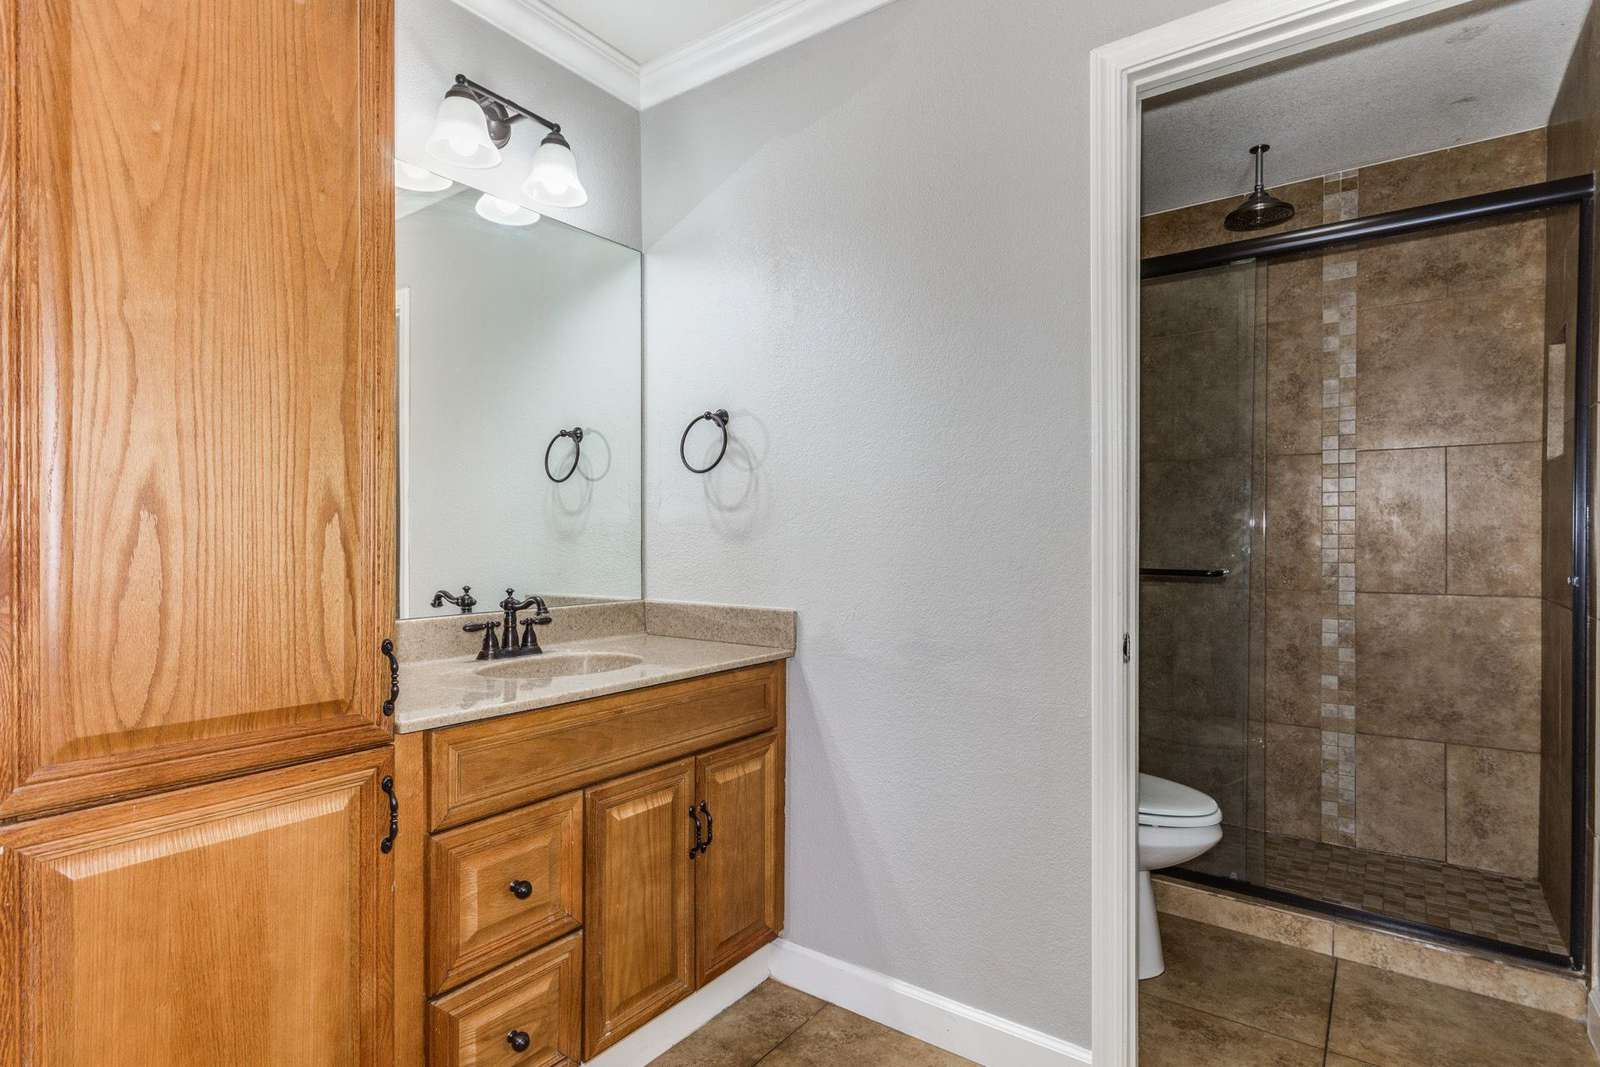 Master Bathroom With Toilet - Shower Closet.